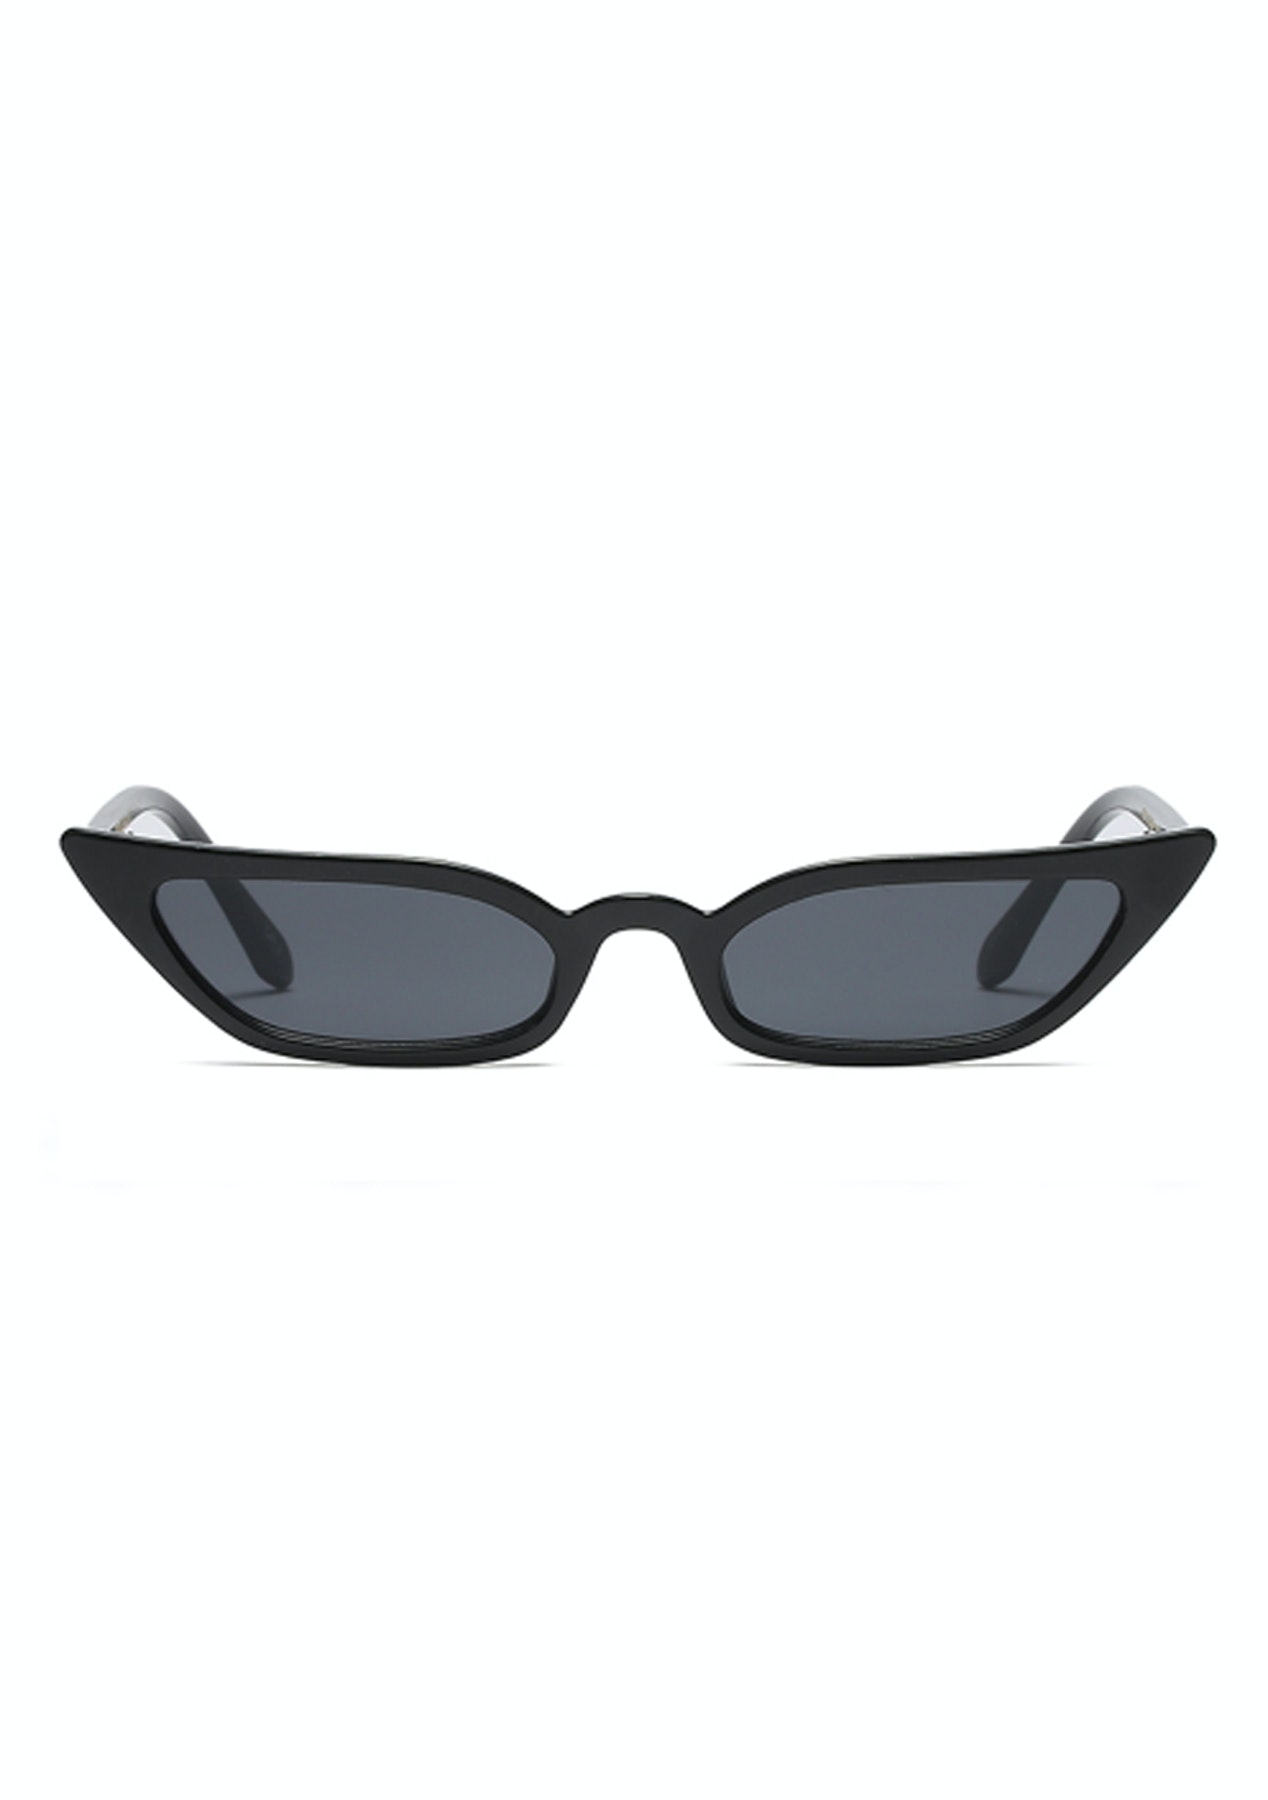 68473f60a805f Slim Cat Eye Sunglasses - Black - On Trend Sunnies   Bags - Onceit